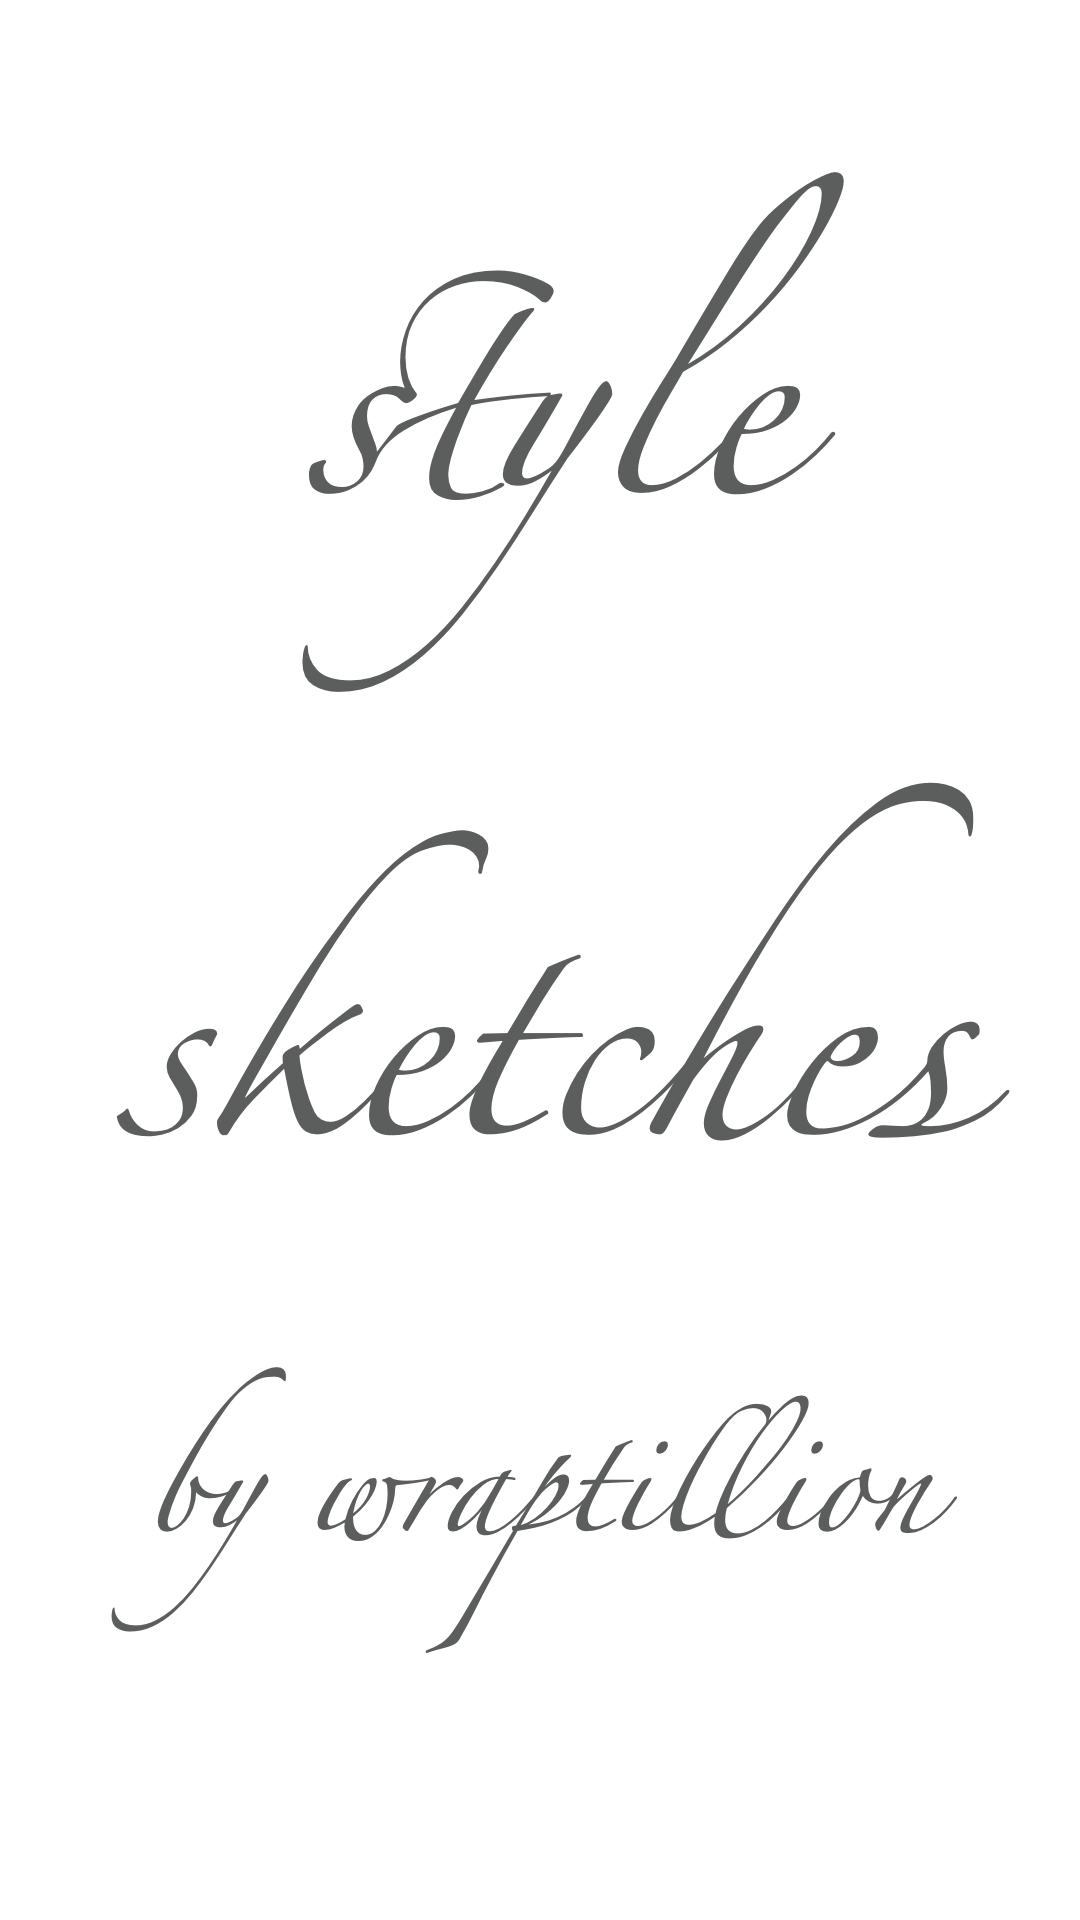 dark gray text on white background reads style sketches by wraptillion